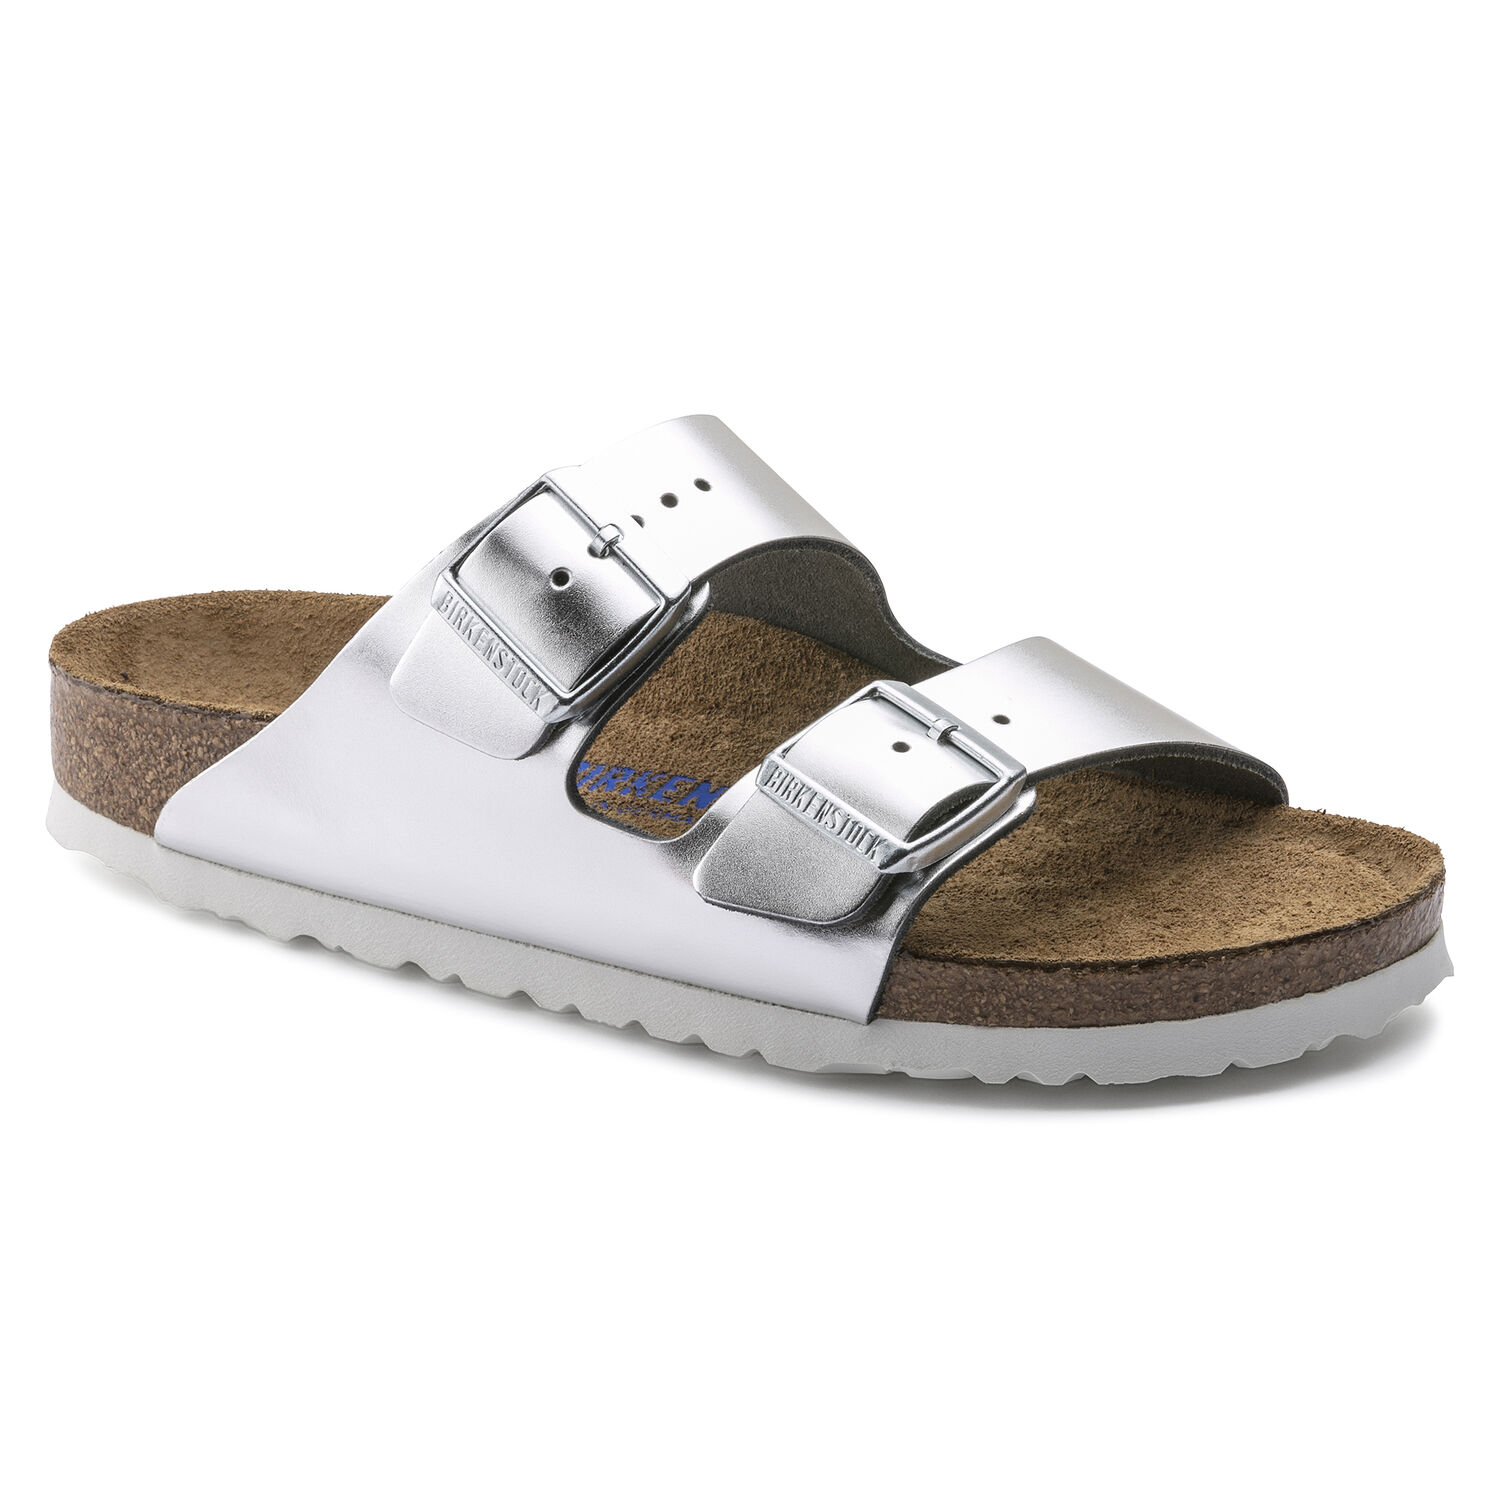 Arizona Soft Footbed - Metallic Silver / Pelle naturale - Ciabatte ortopediche